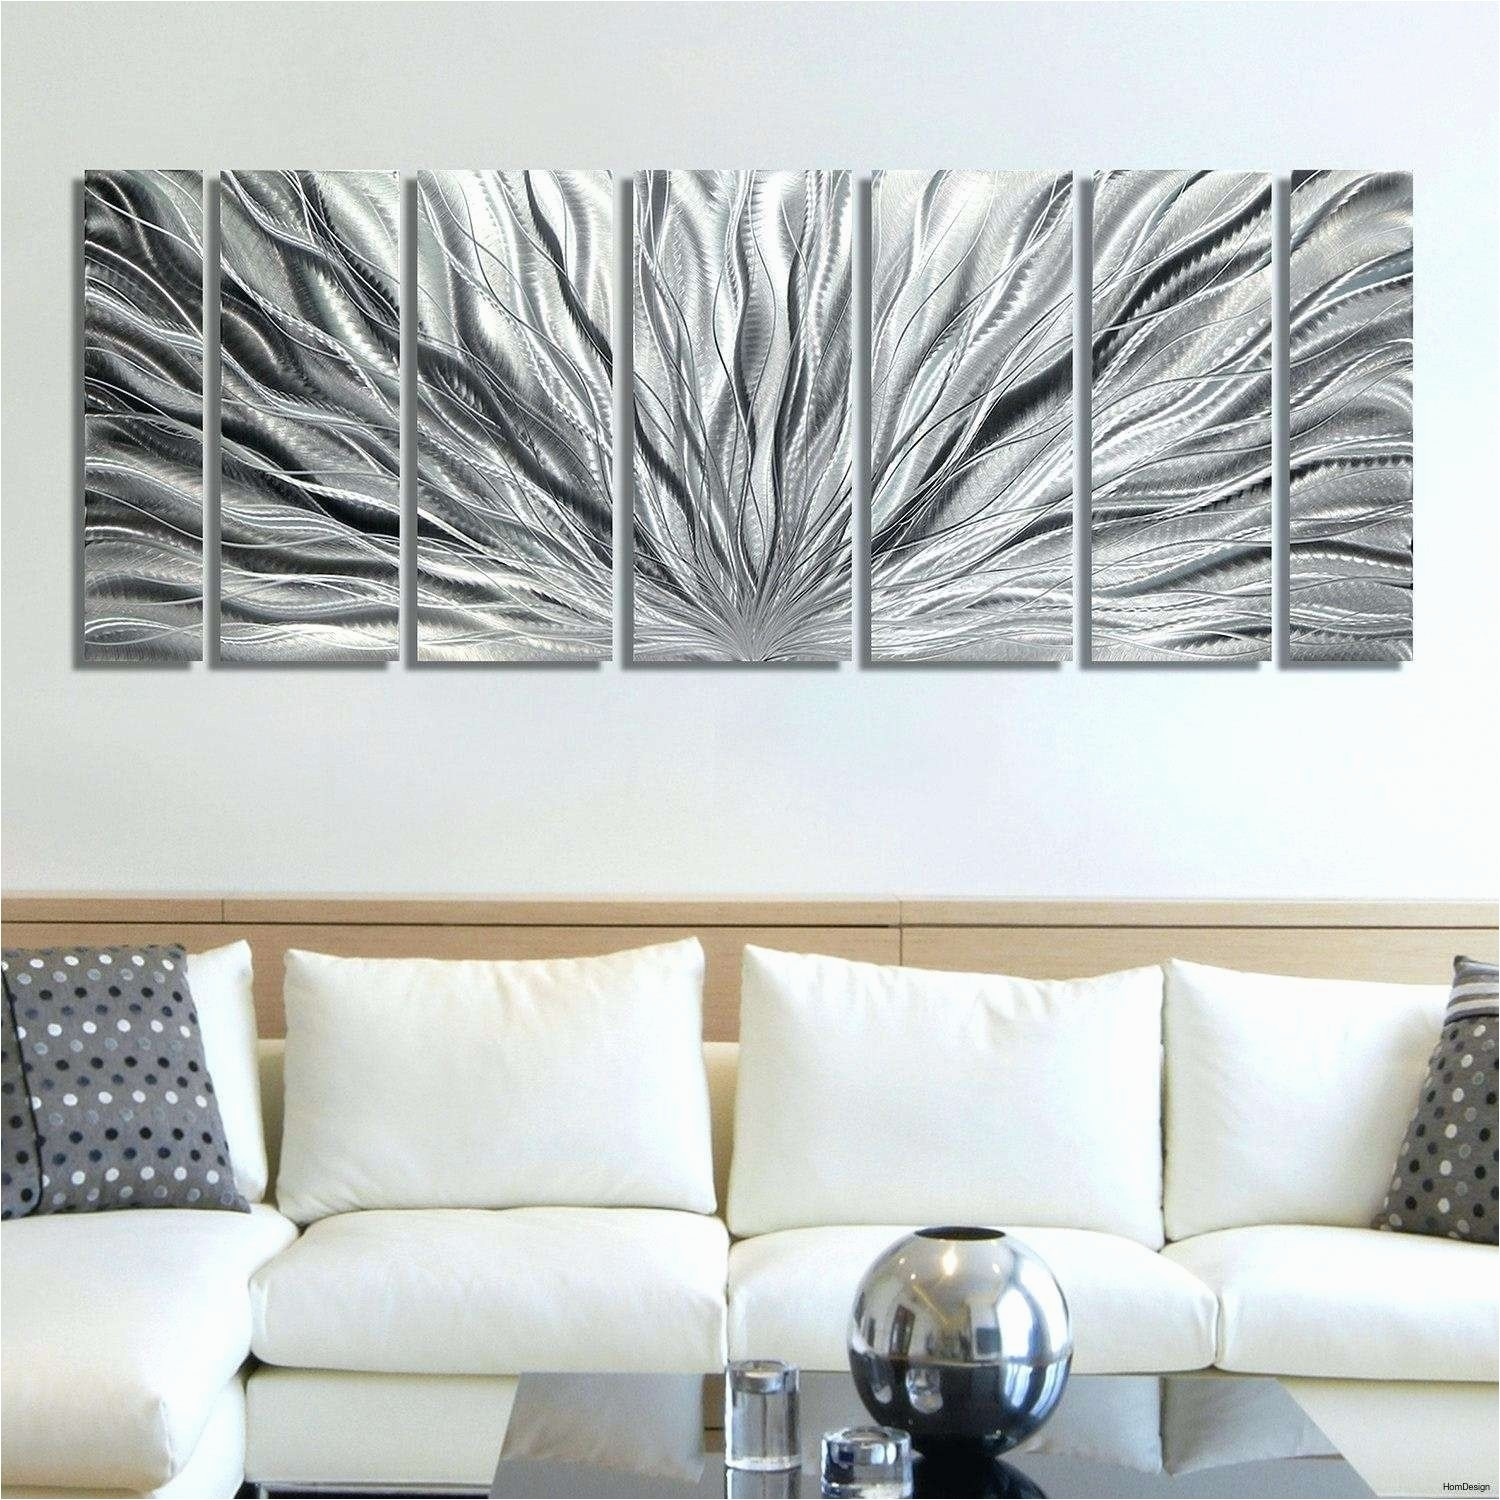 Living Room Corner Wall Decor Luxury Wall Art For Living Room Ideas Pertaining To Most Up To Date Corner Wall Art (Gallery 9 of 20)